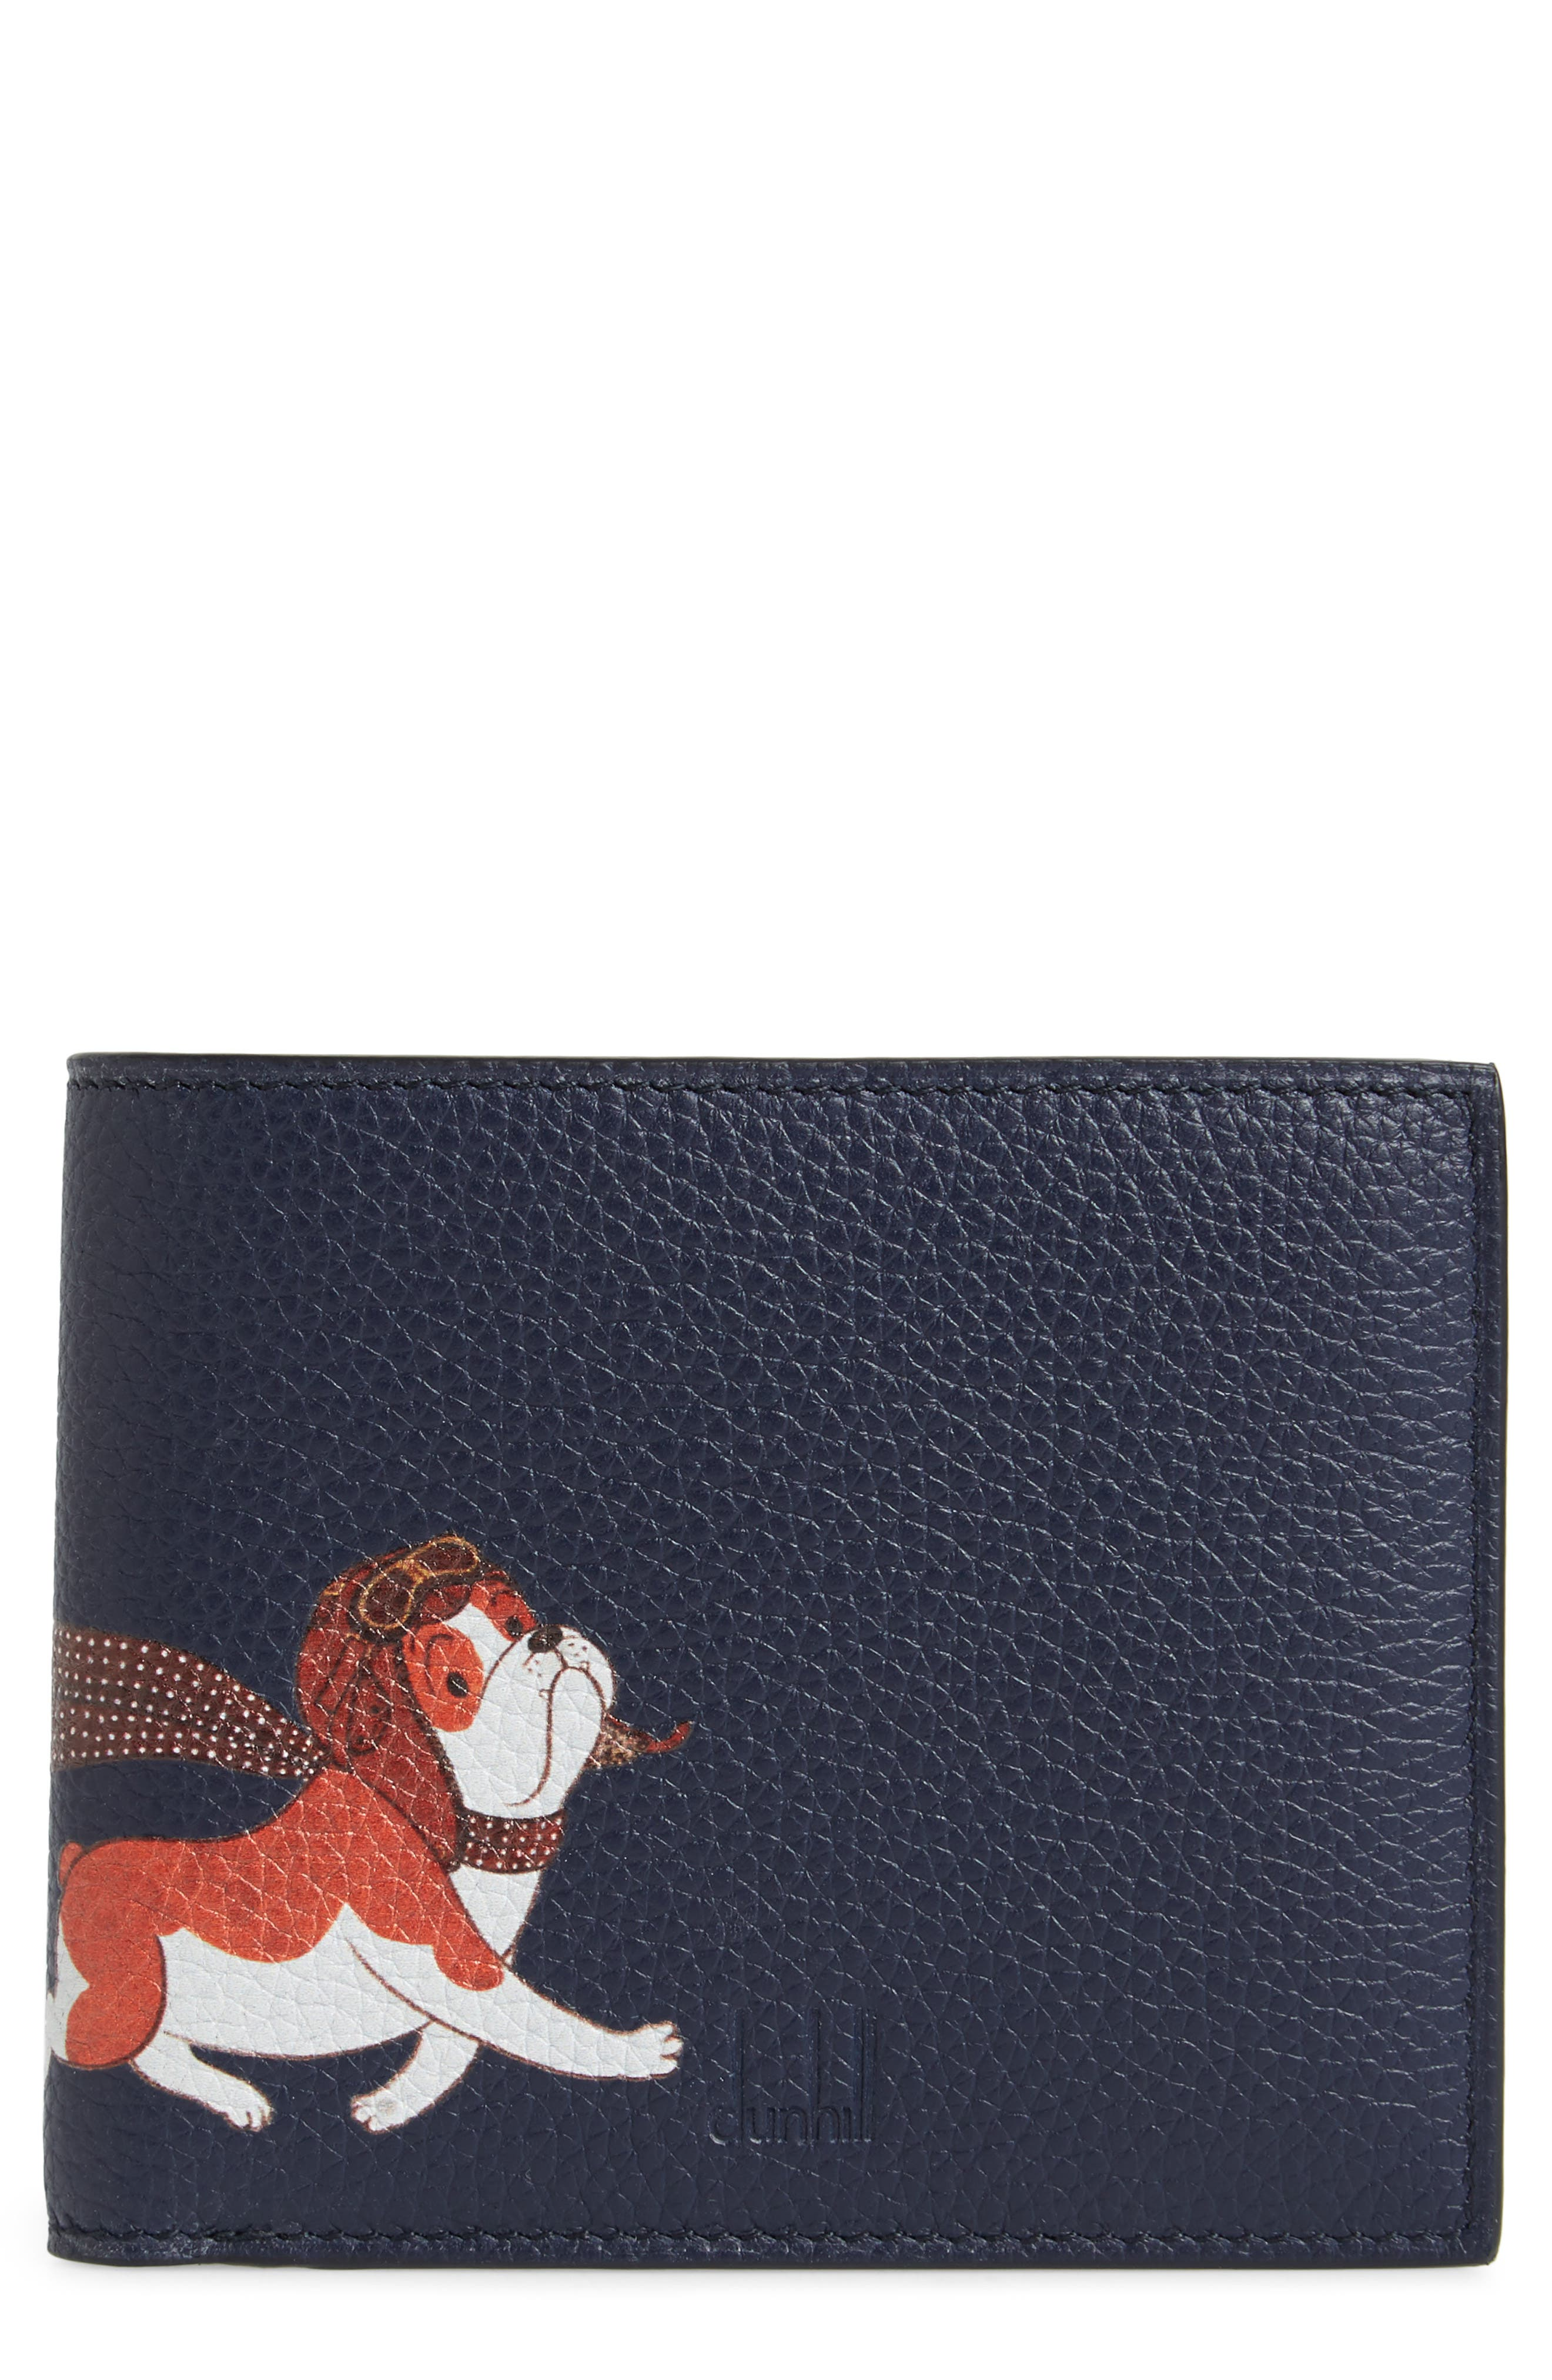 Boston Bulldog Leather Bifold Wallet,                             Main thumbnail 1, color,                             Navy